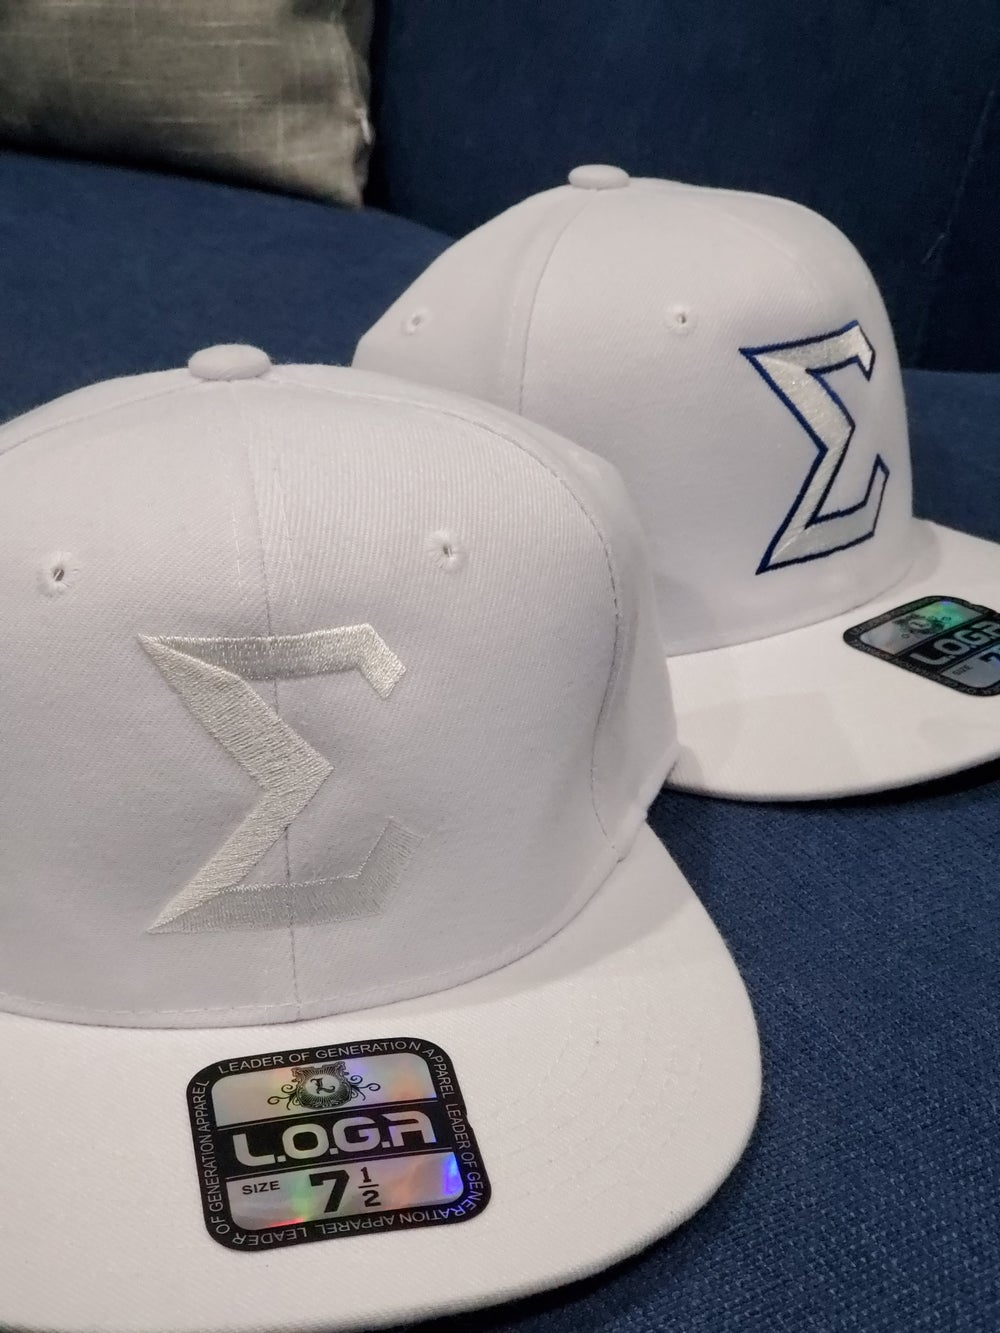 All-White Sigma Fitted Baseball Caps